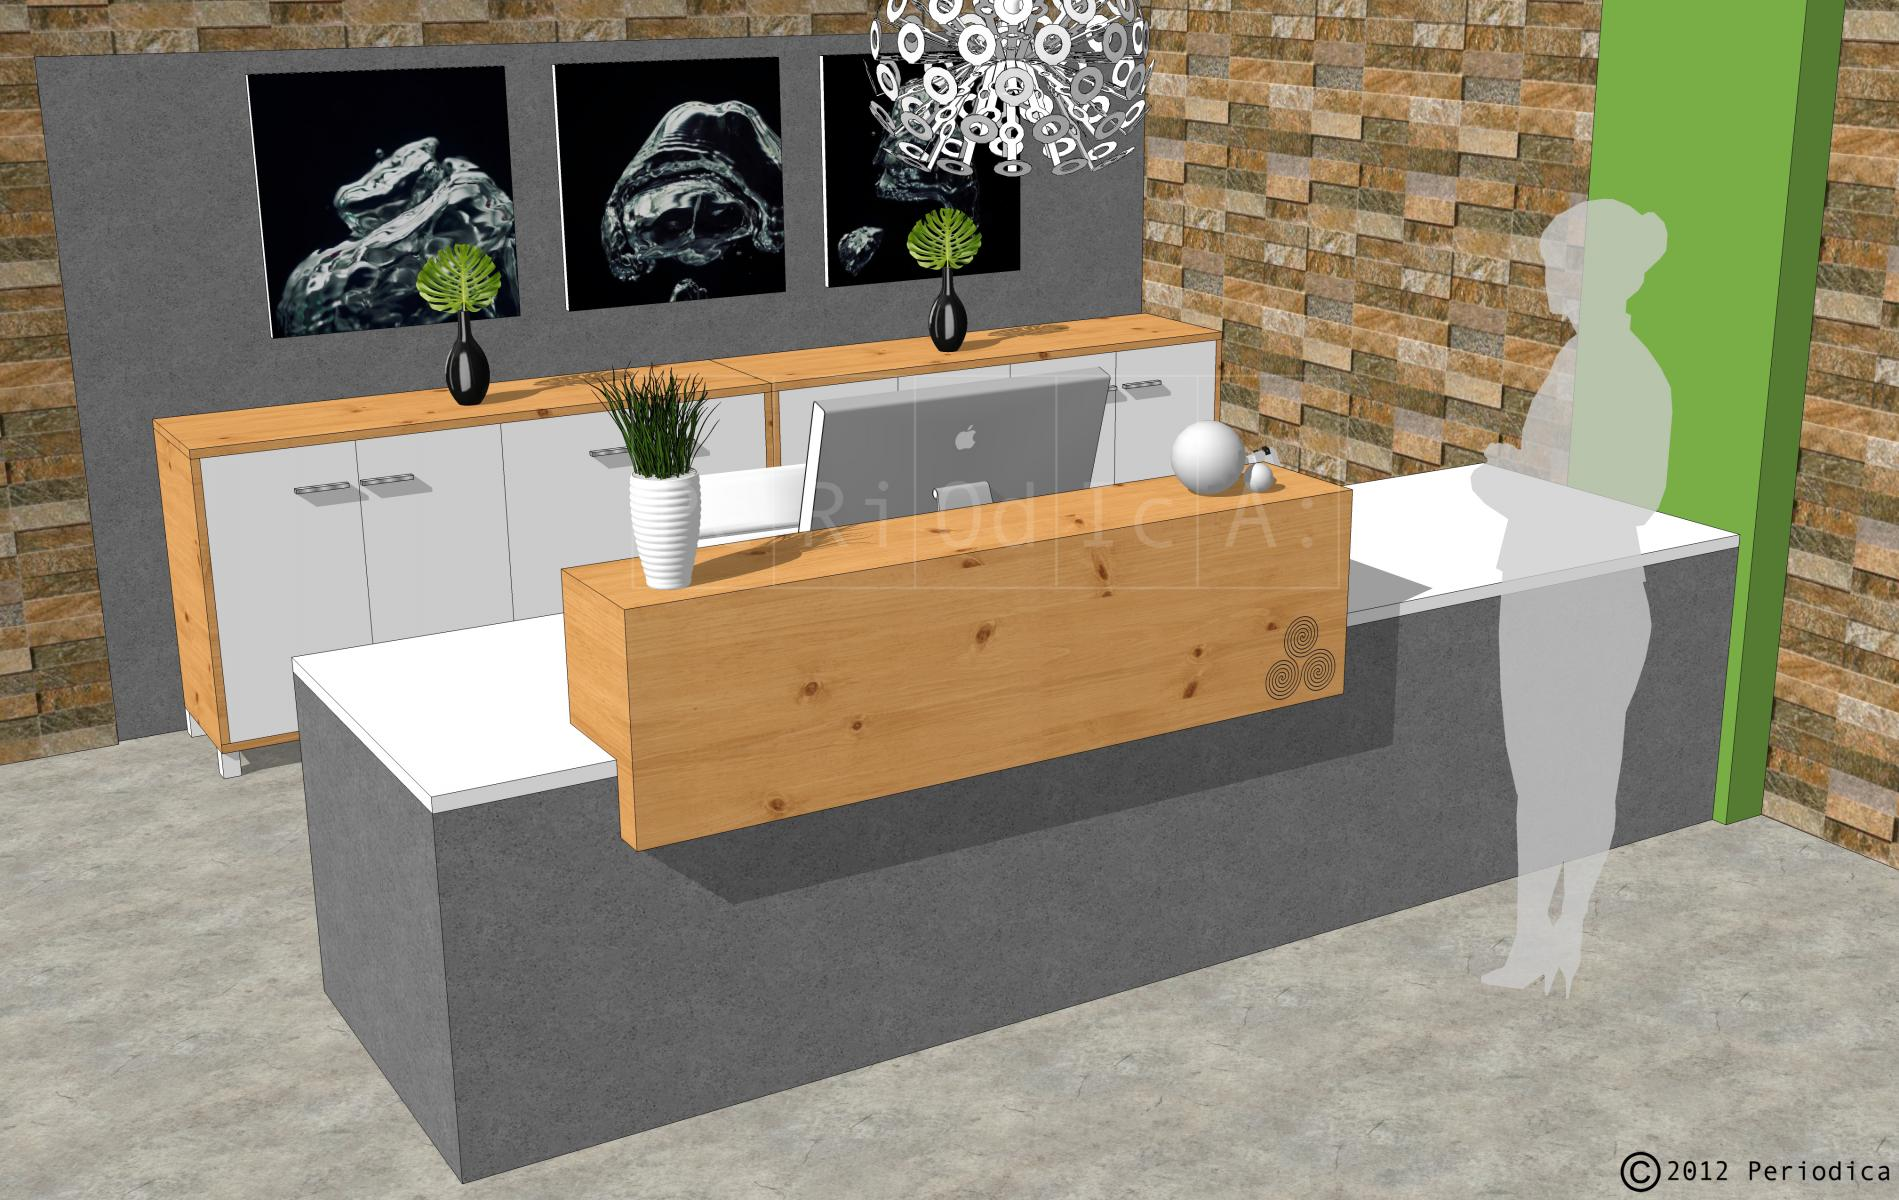 004/ reception desk. art by joao travessa